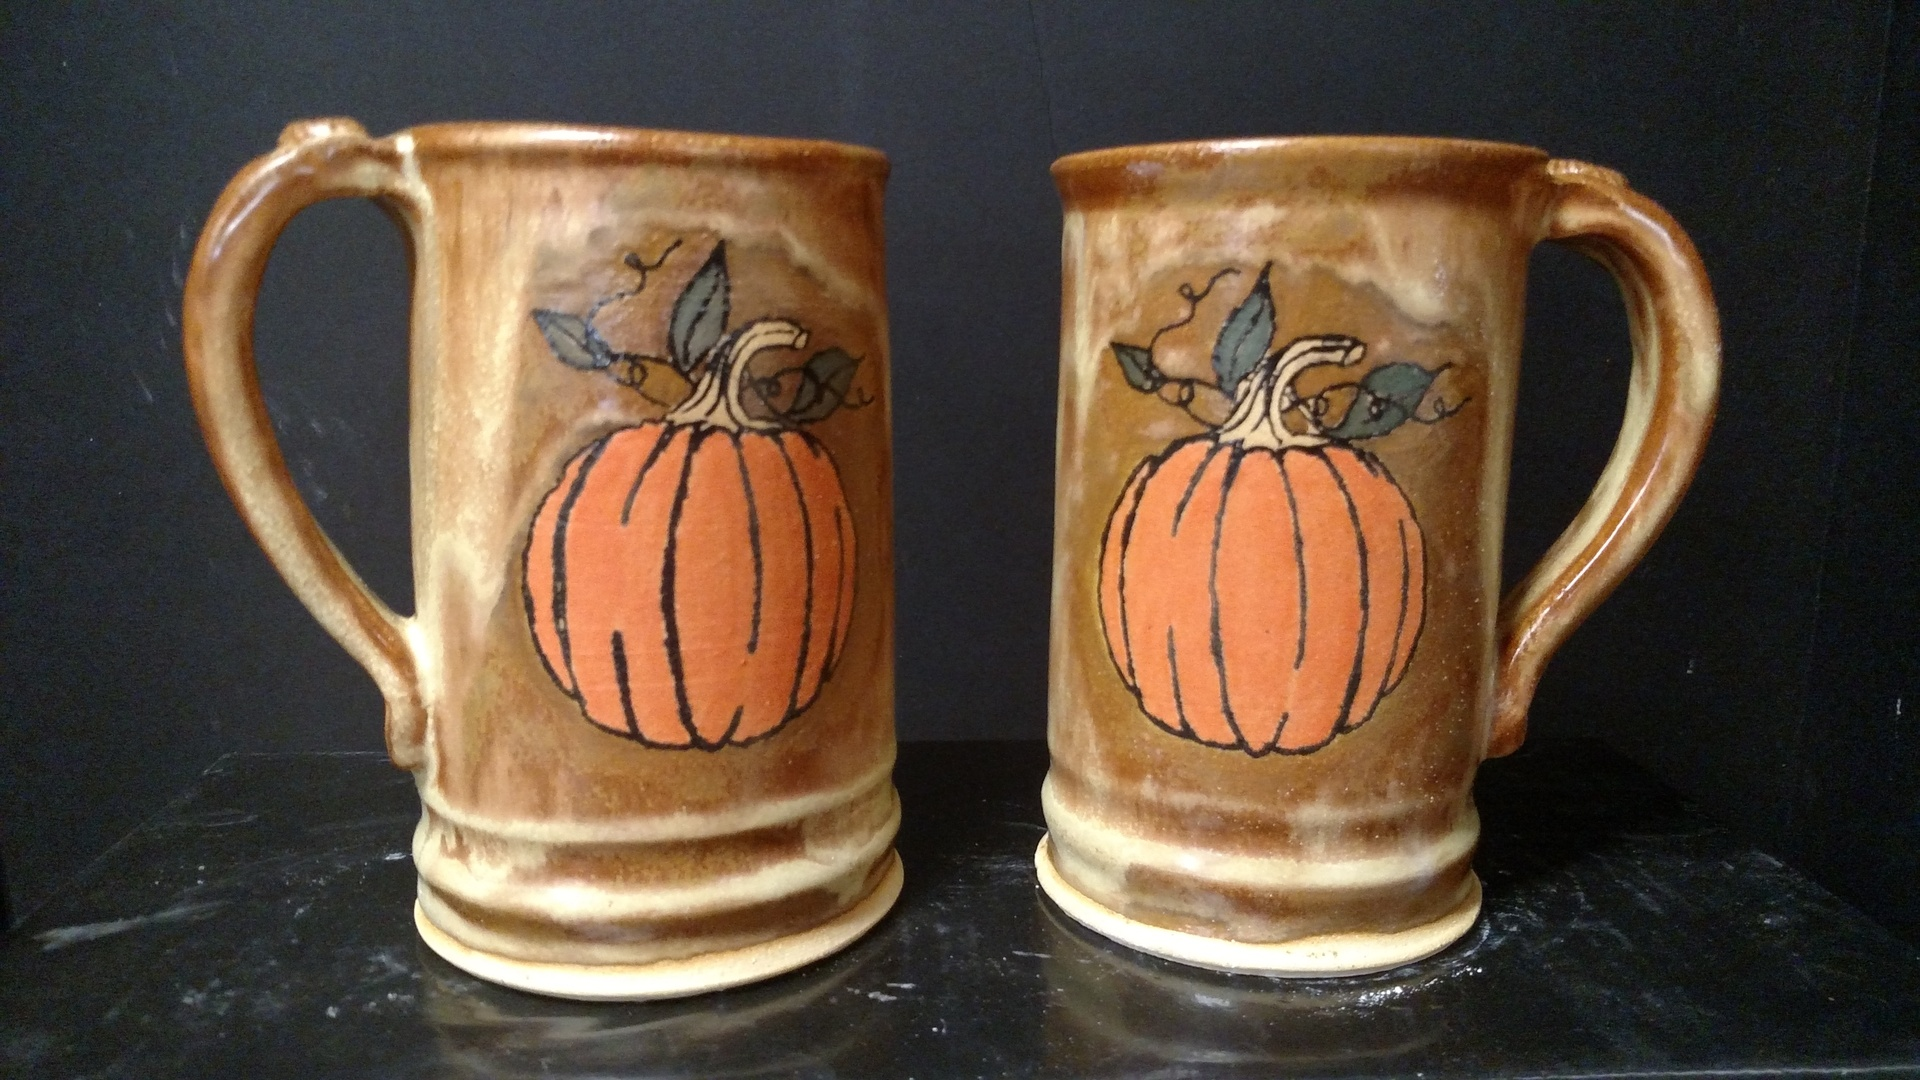 Stoneware mugs/beer stein - Hand drawn pumpkins